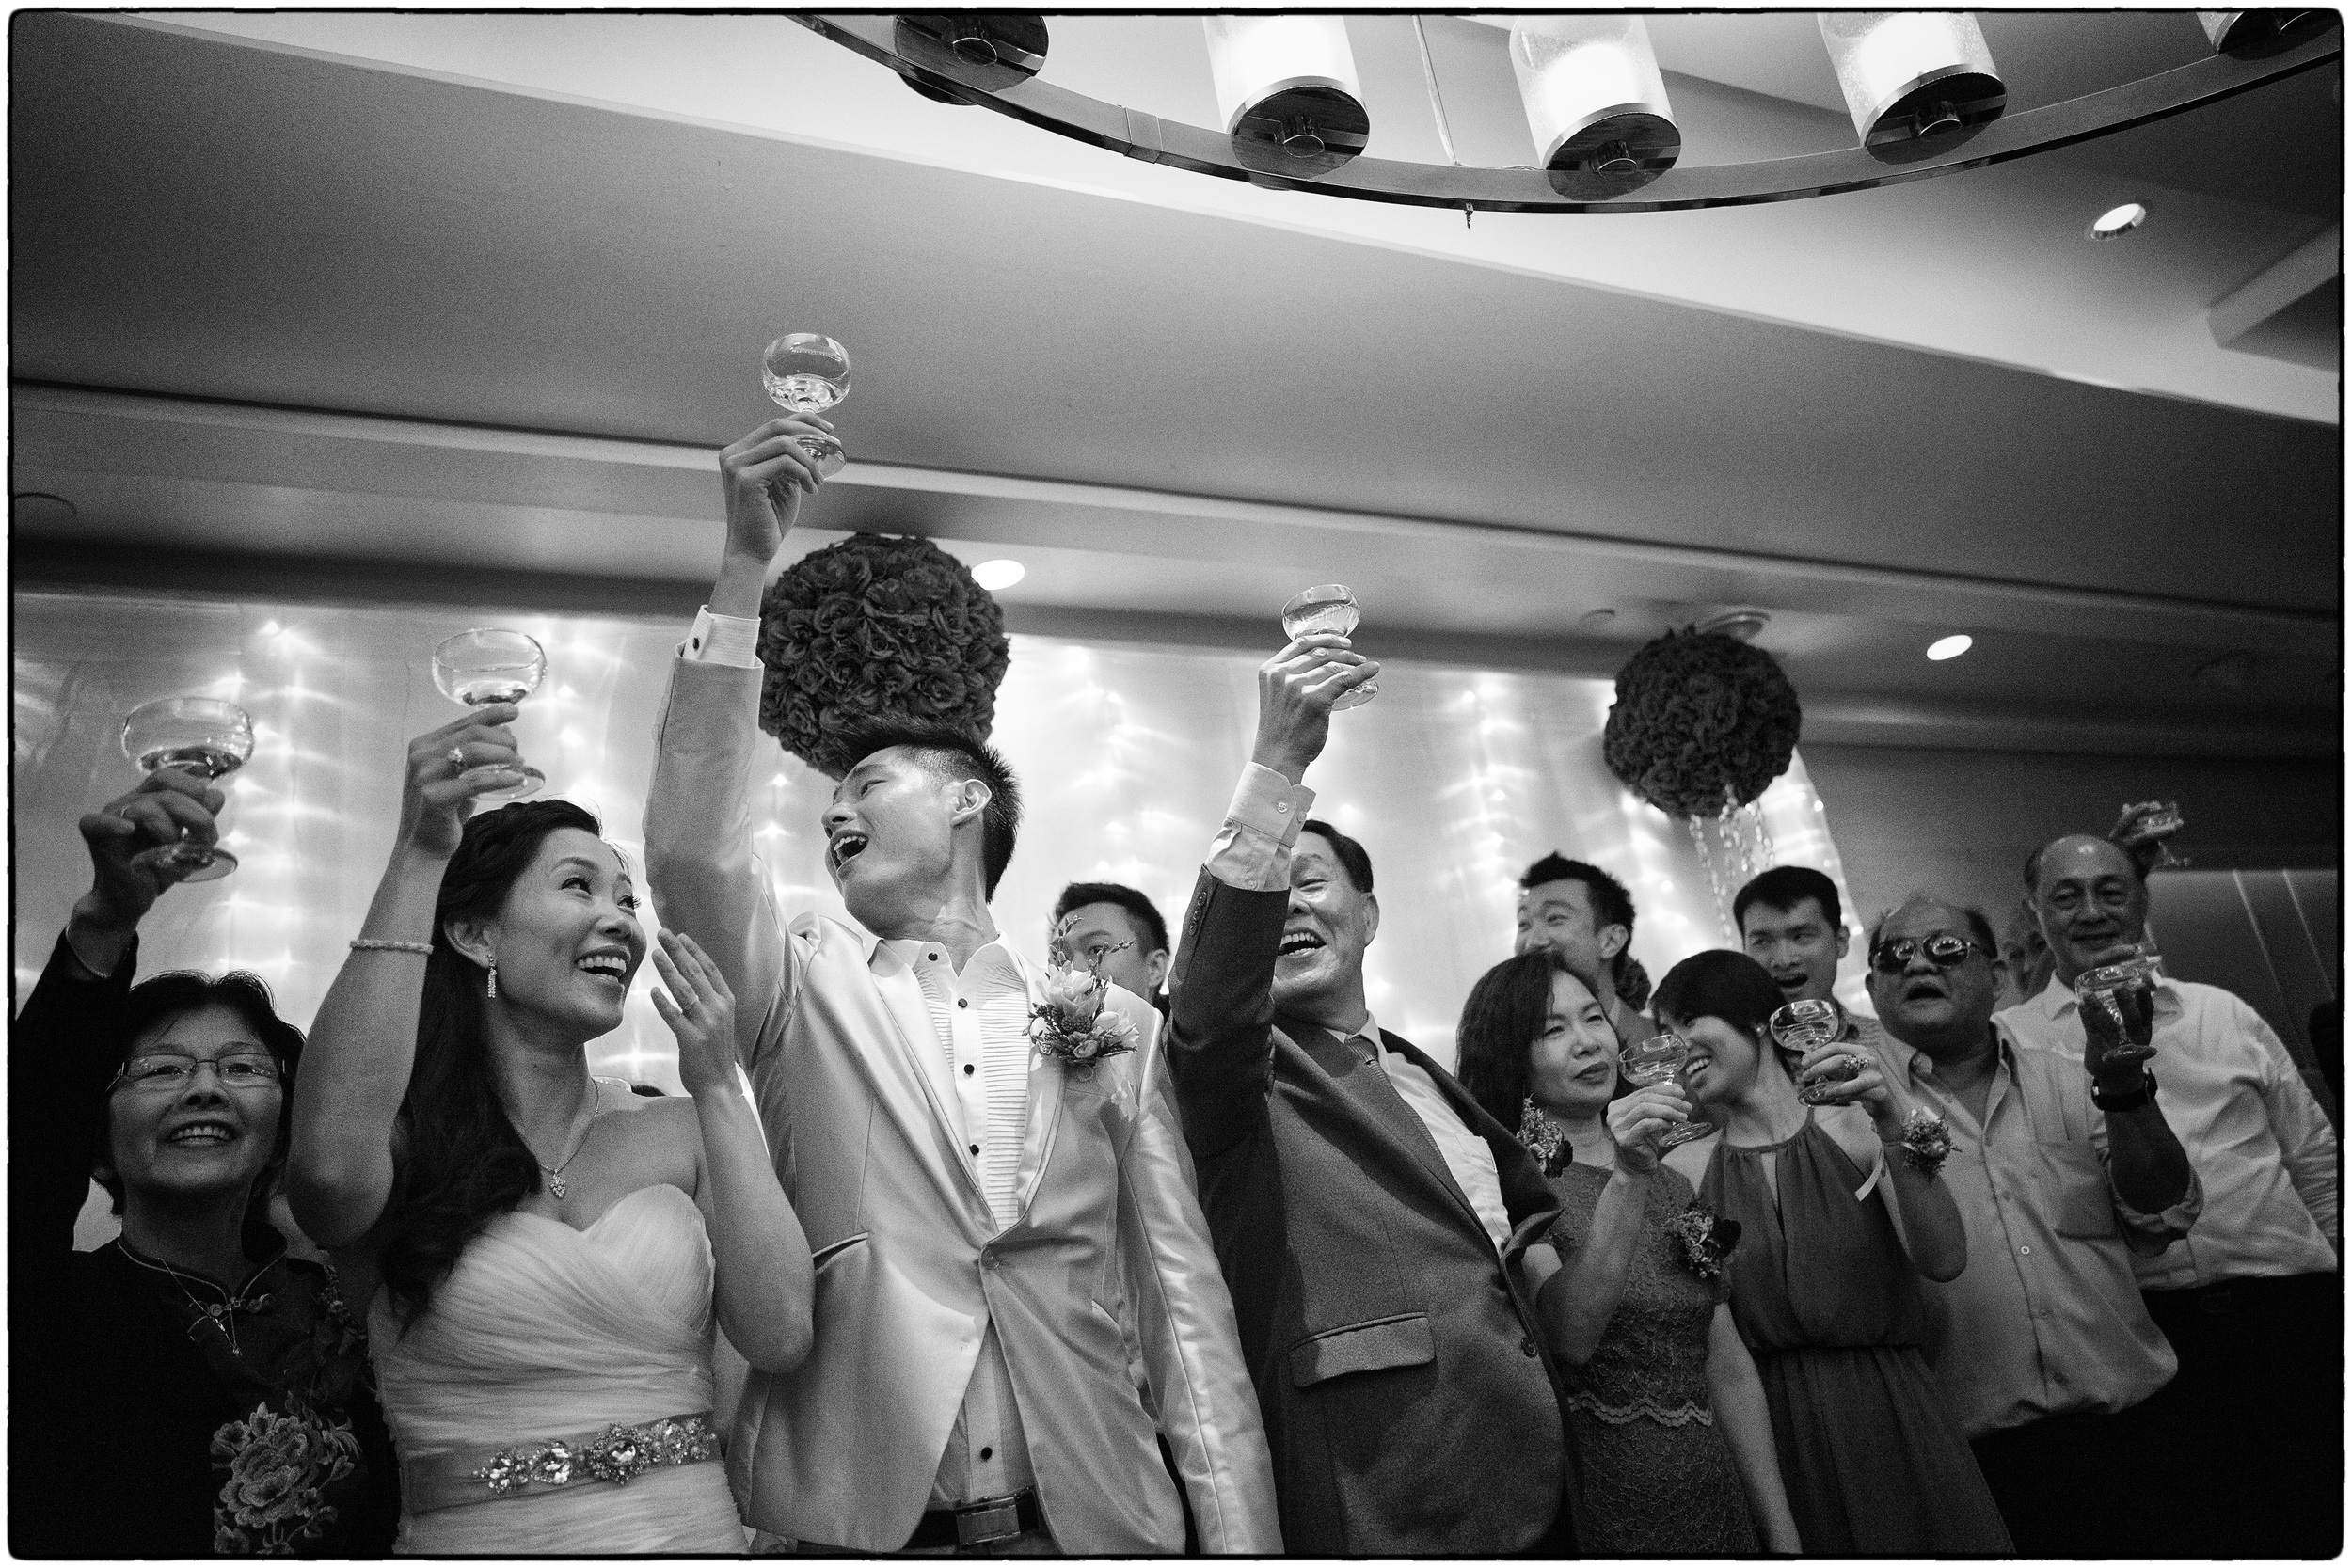 The Toast (Batis 2/25mm, ISO 3200, f2 @ 1/640)